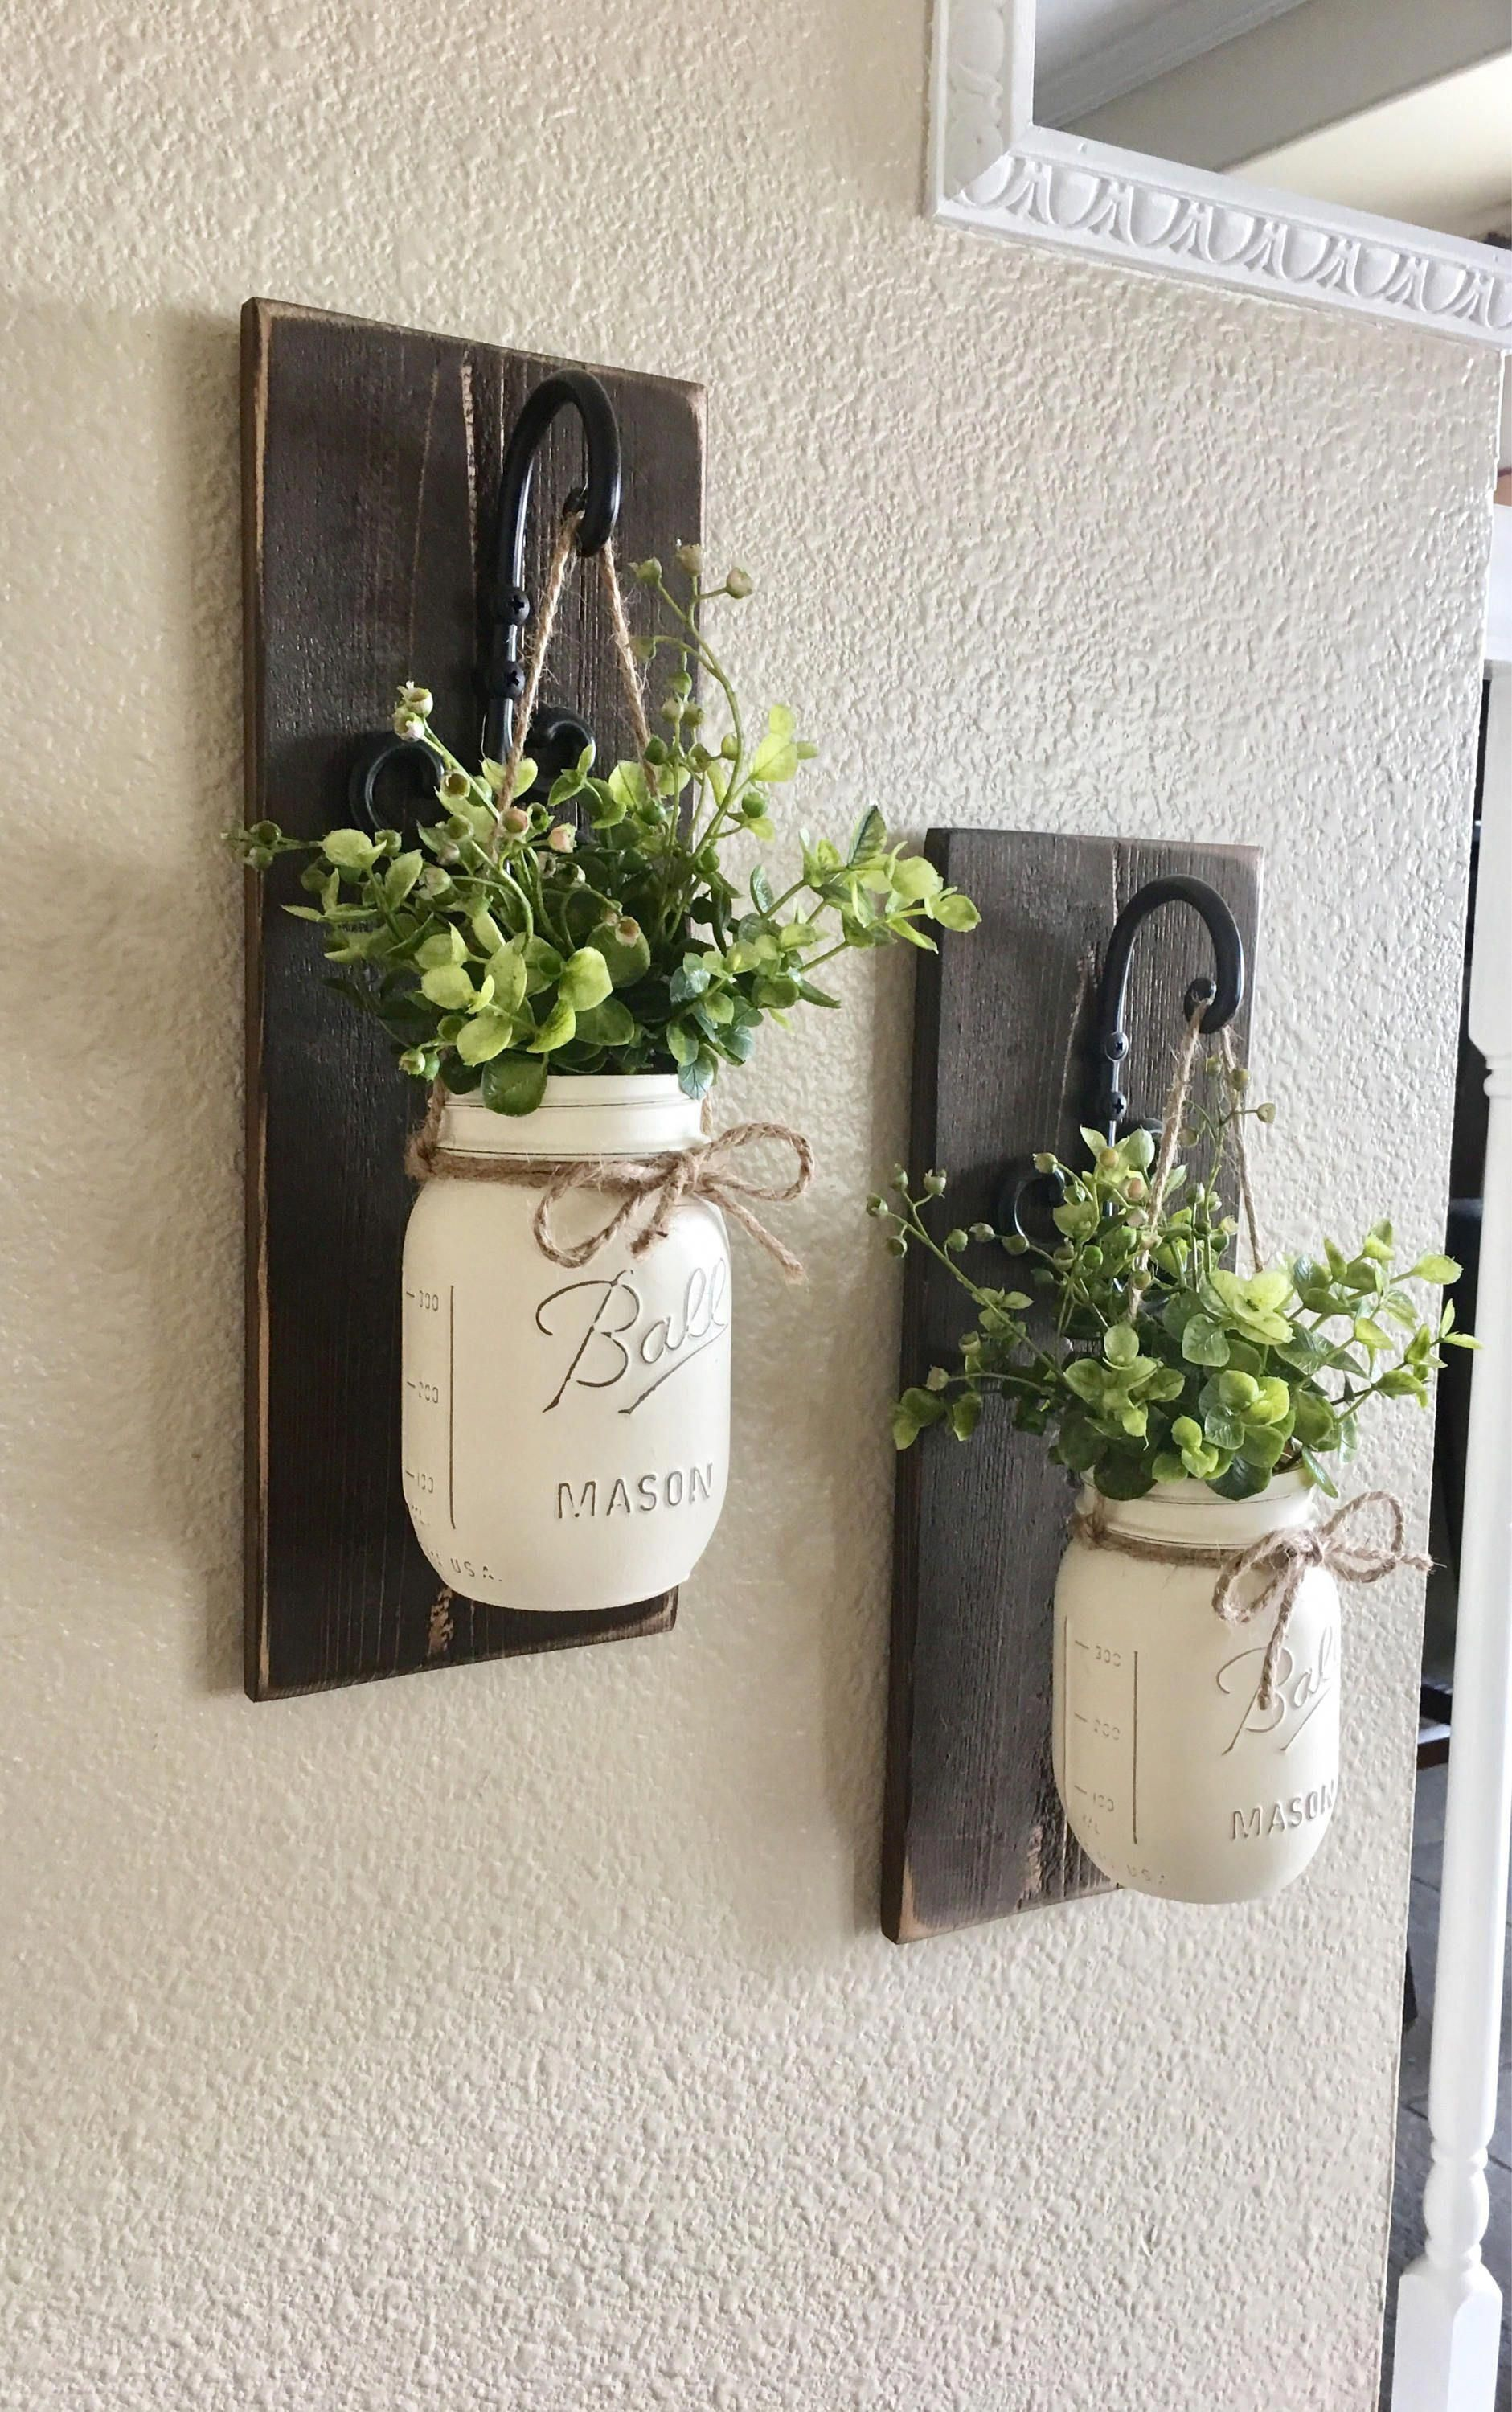 Mason Jar Hanging Planter, Home Decor, Wall Decor, Rustic Decor, Hanging Mason Jar Sconce, Mason Jar Decor, Hanging Planter With Greenery